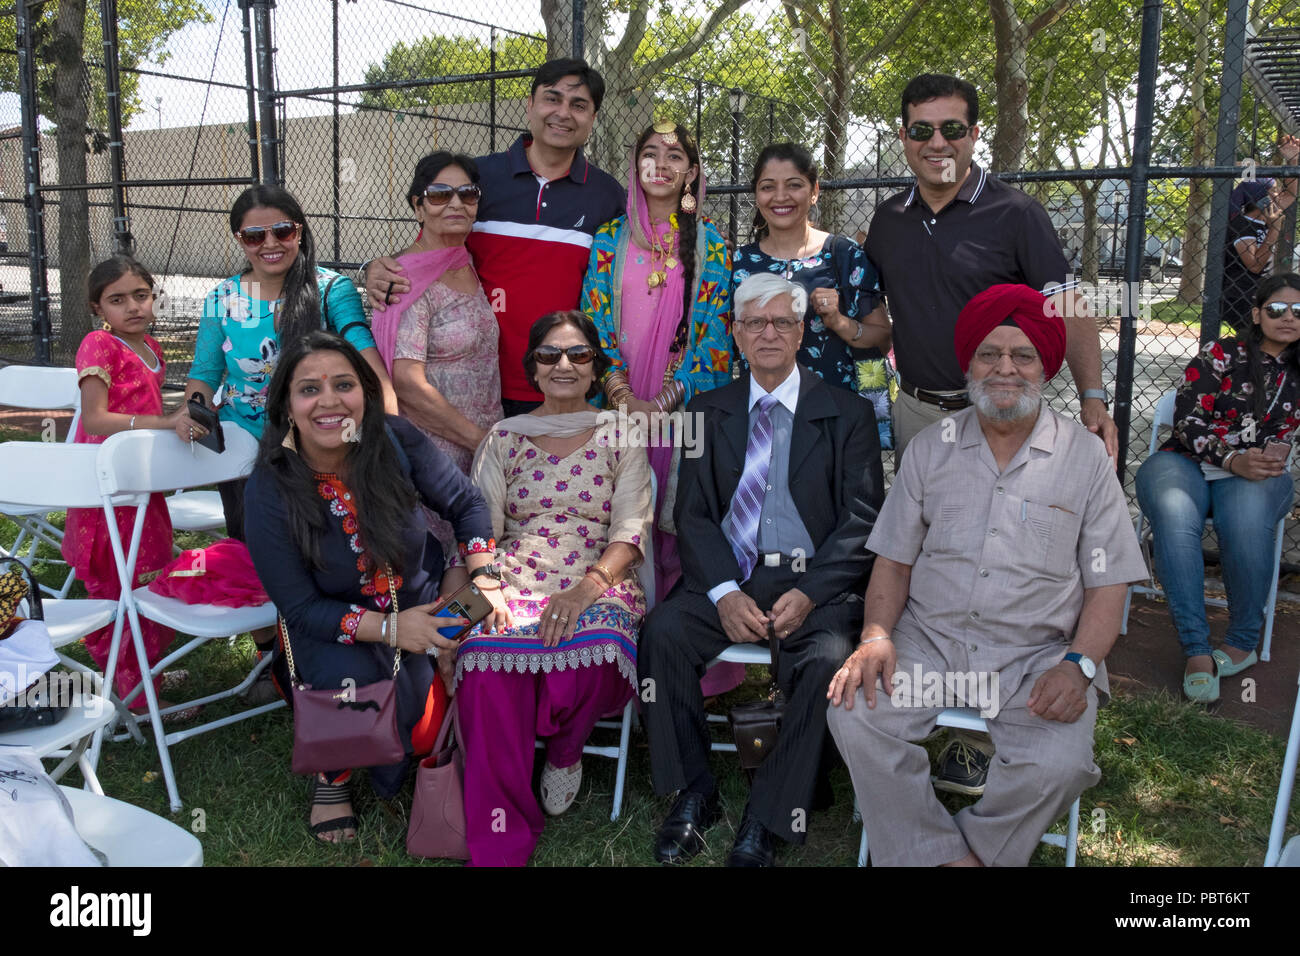 A posed portrait of an extended family at Sikh Gurmat Games at Smokey Park in Queens, New York. The girl in the back row won a fashion contest. - Stock Image